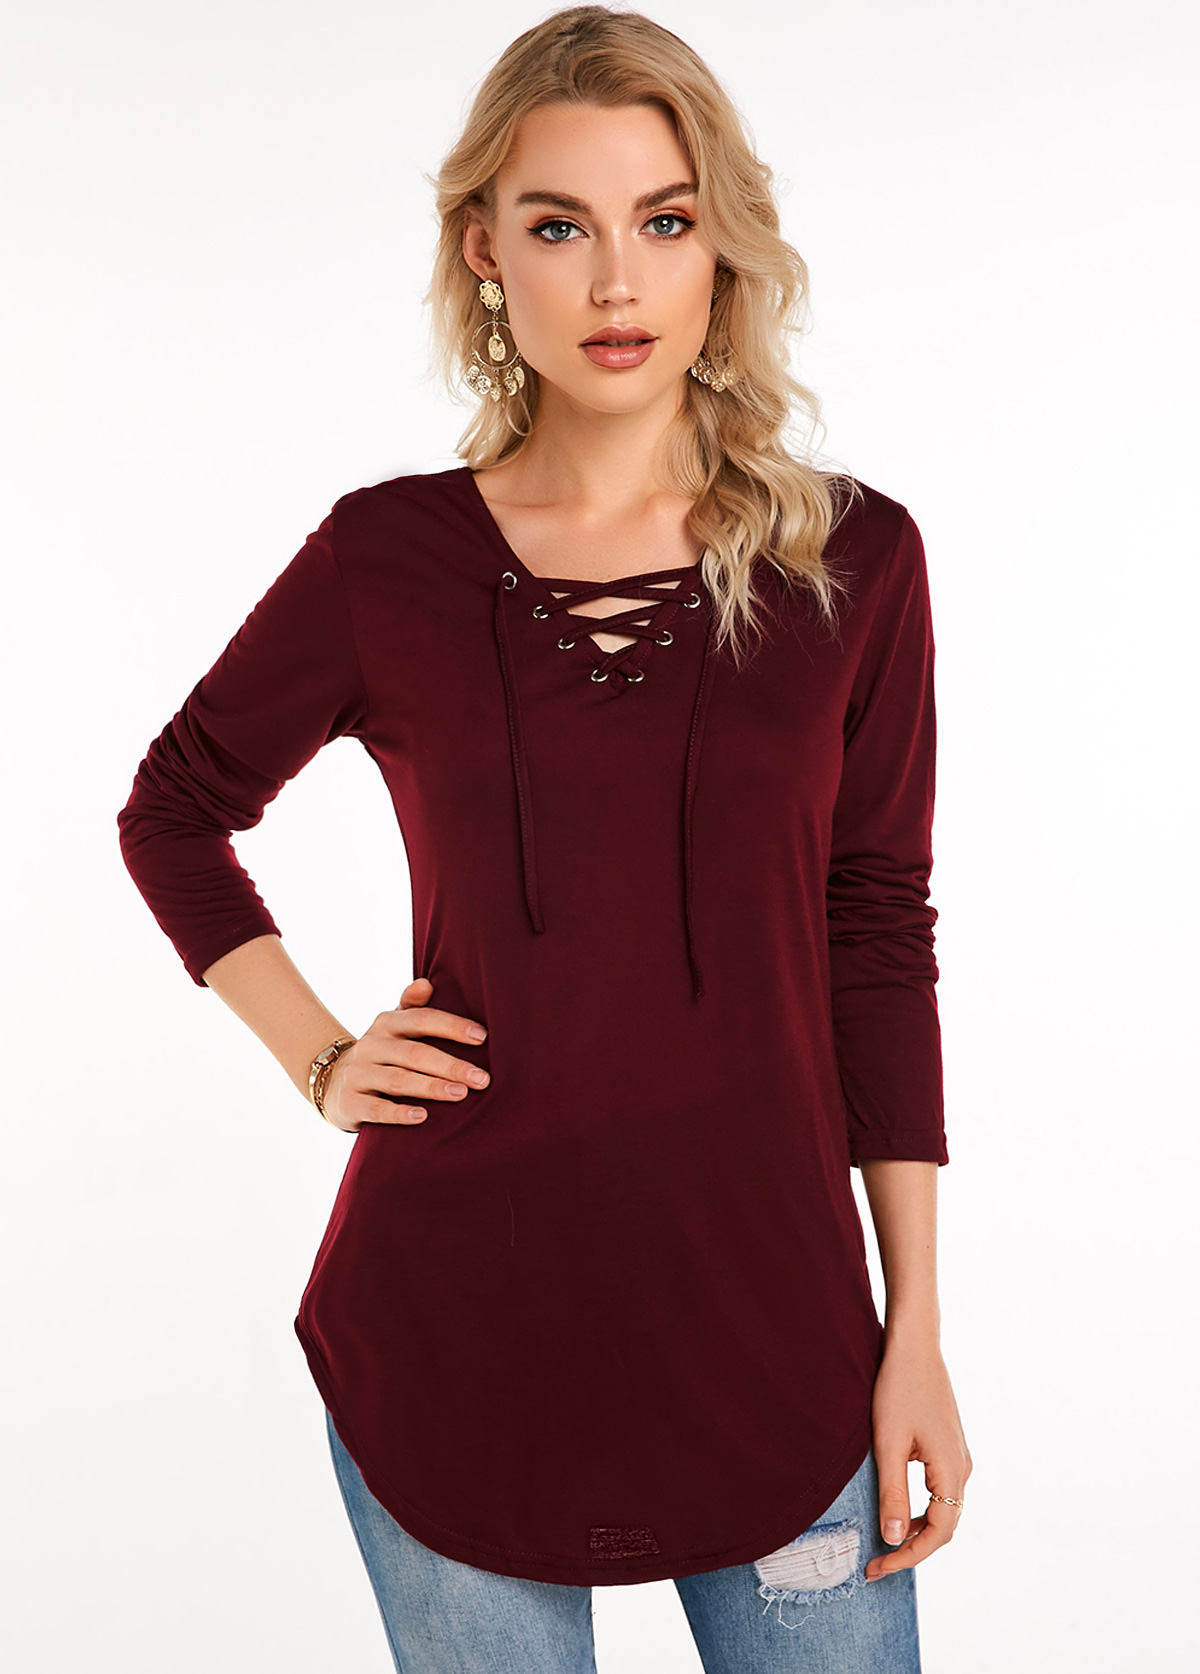 Wine Red Lace Up Long Sleeve T Shirt